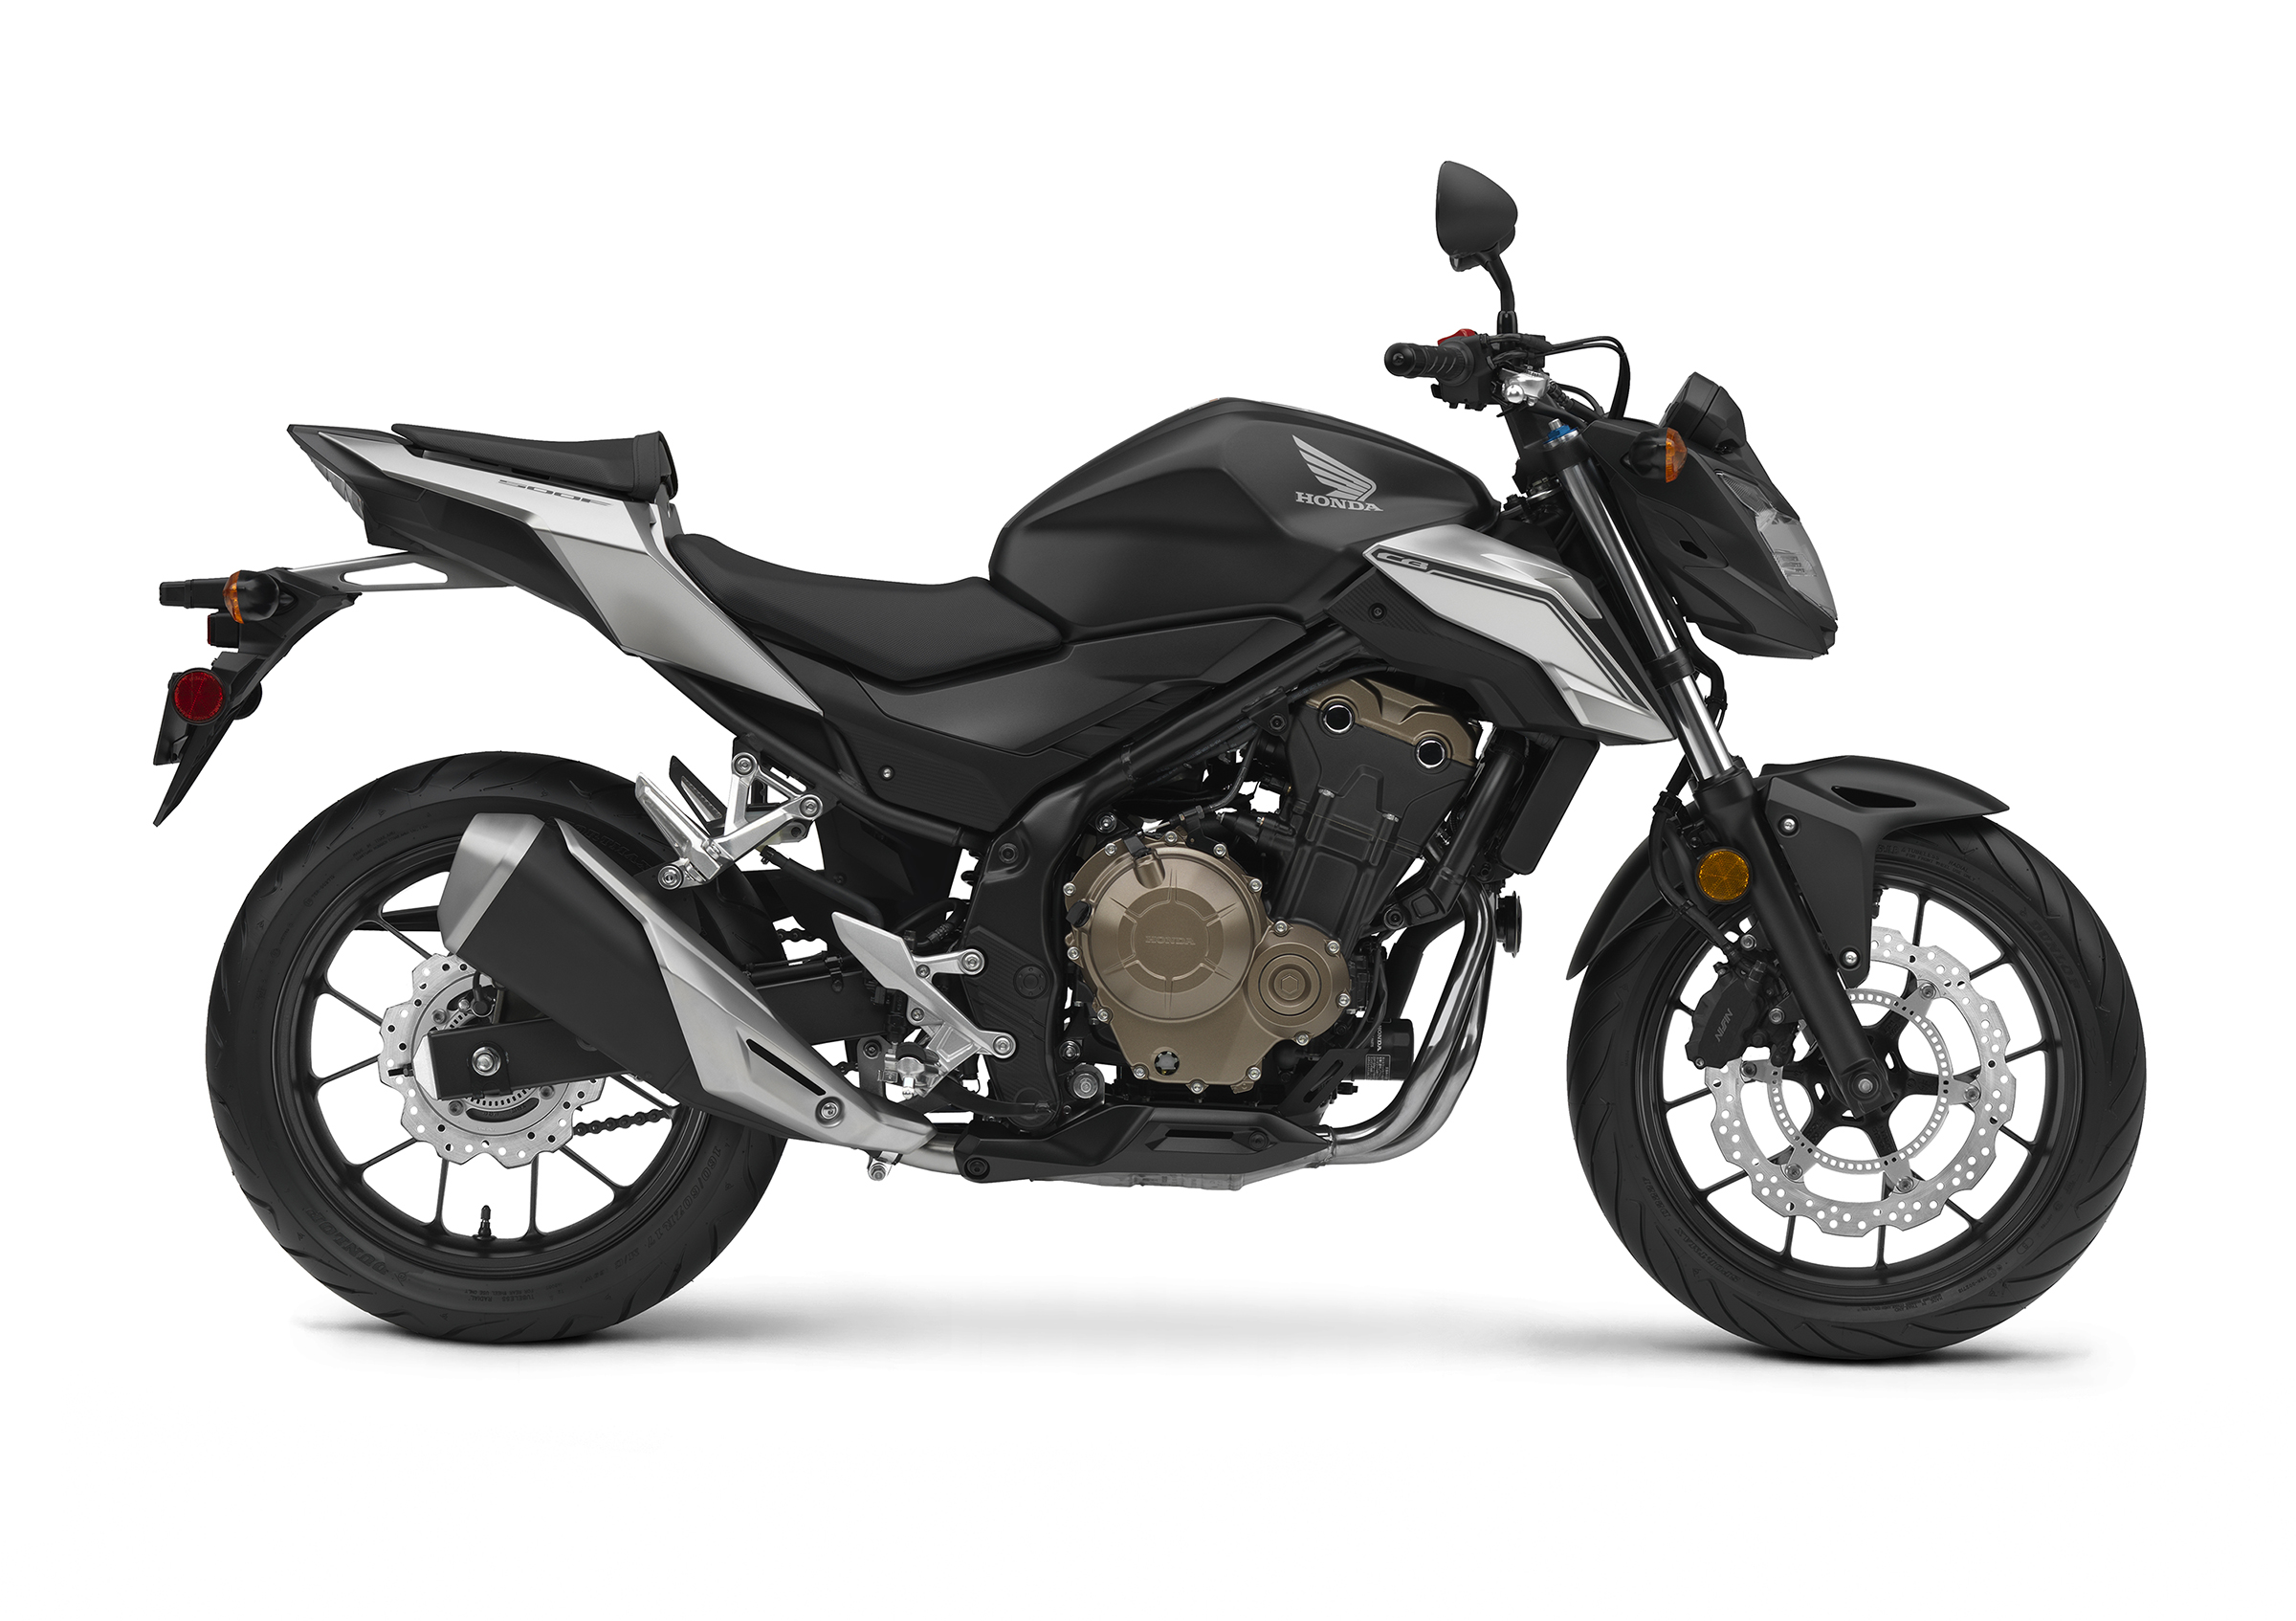 Honda Unveils Updated CB500F And Metropolitan At EICMA